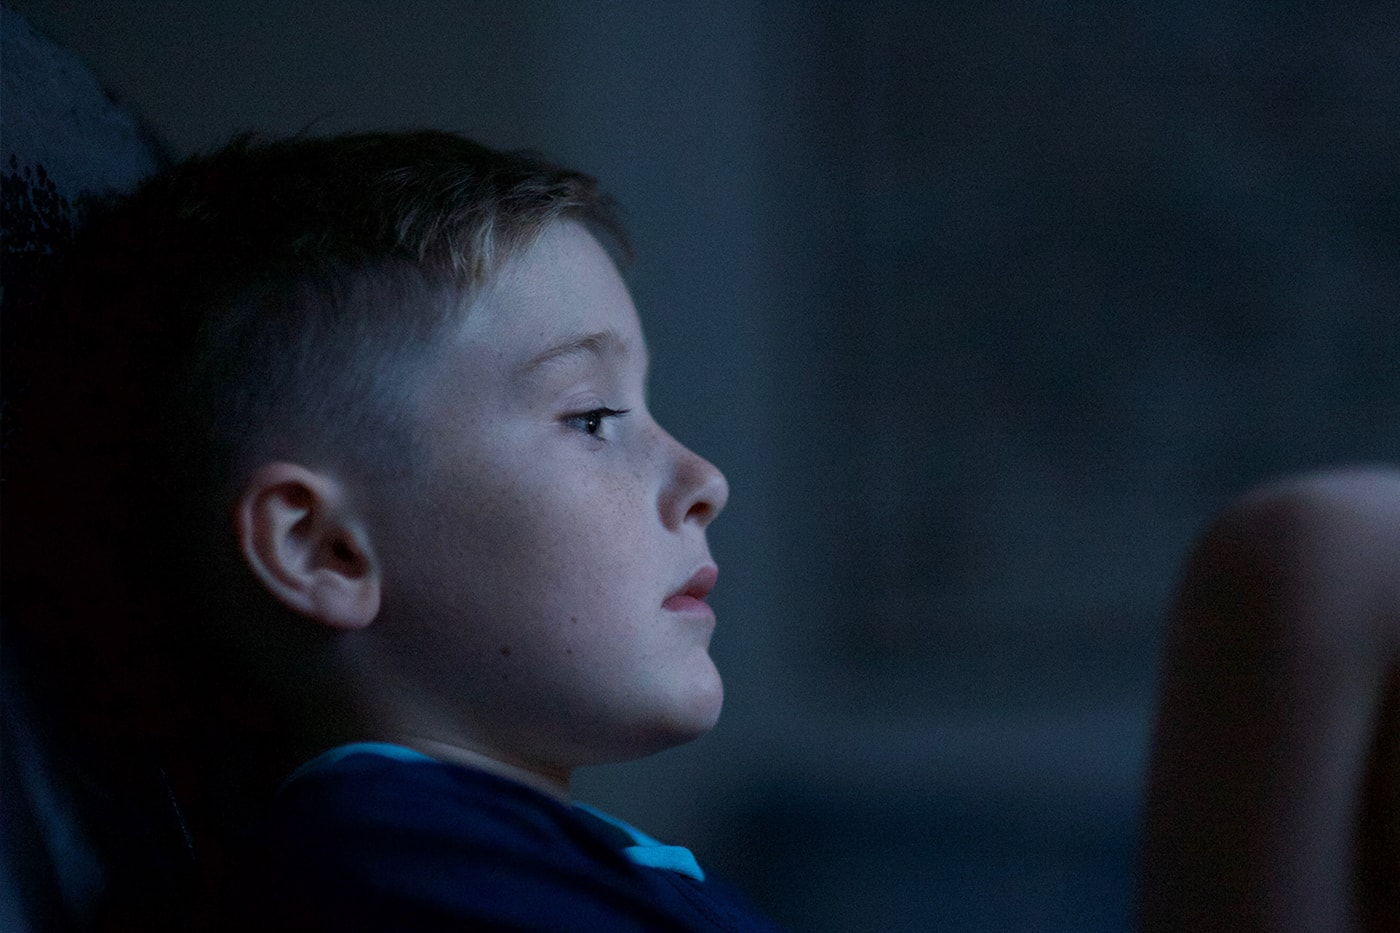 Somber child looking off toward a light or window